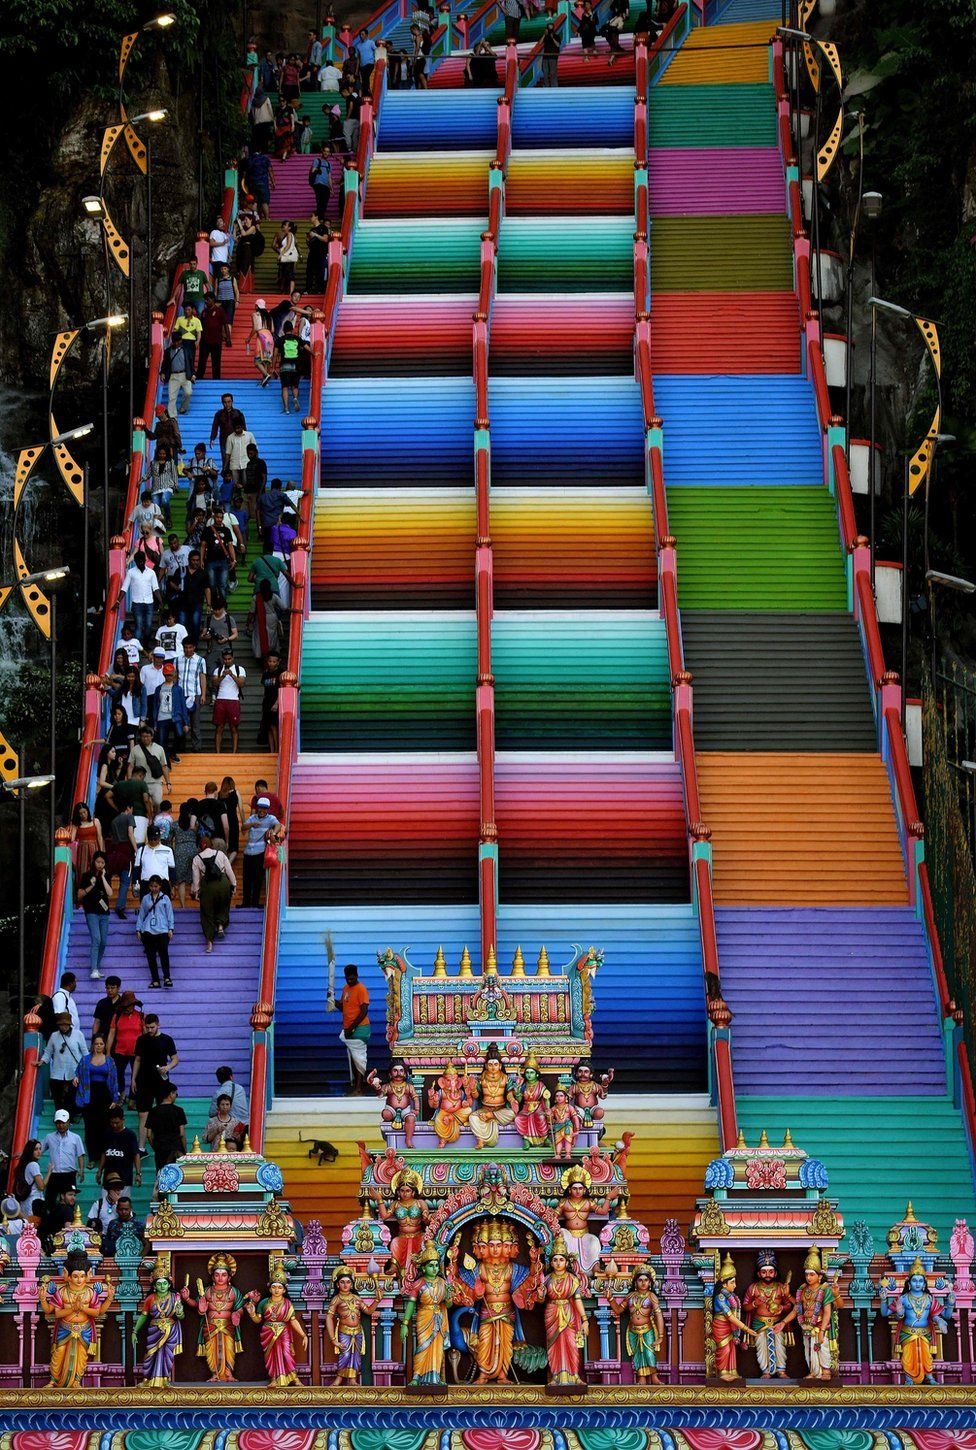 Visitors walk on the colourful stairs at Malaysia's Batu Caves